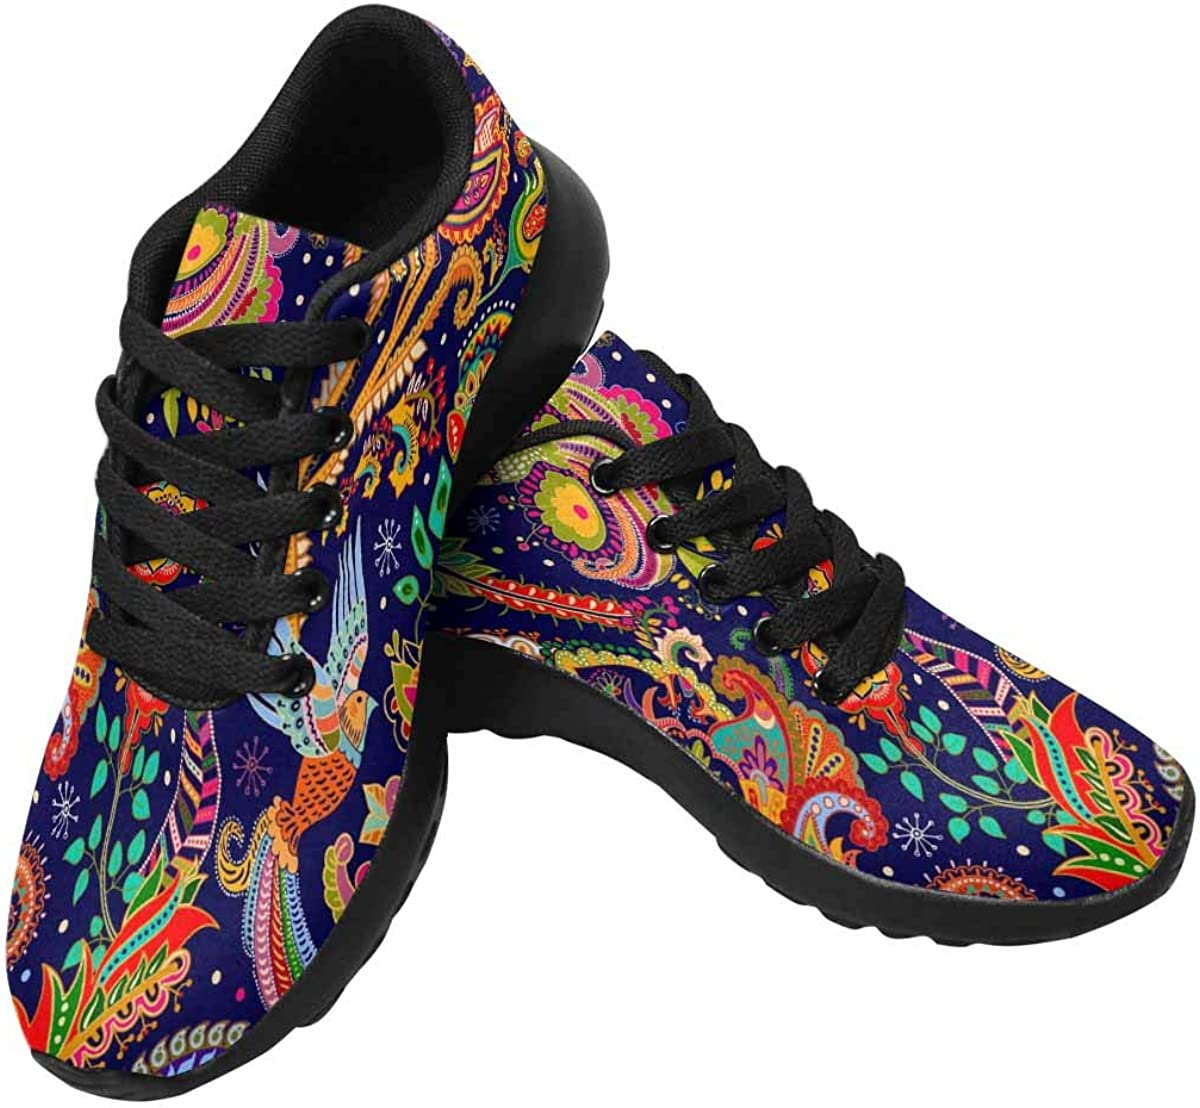 INTERESTPRINT Women s Running Shoes – Casual Breathable Athletic Tennis Sneakers Birds and Decorative Elements, Paisley